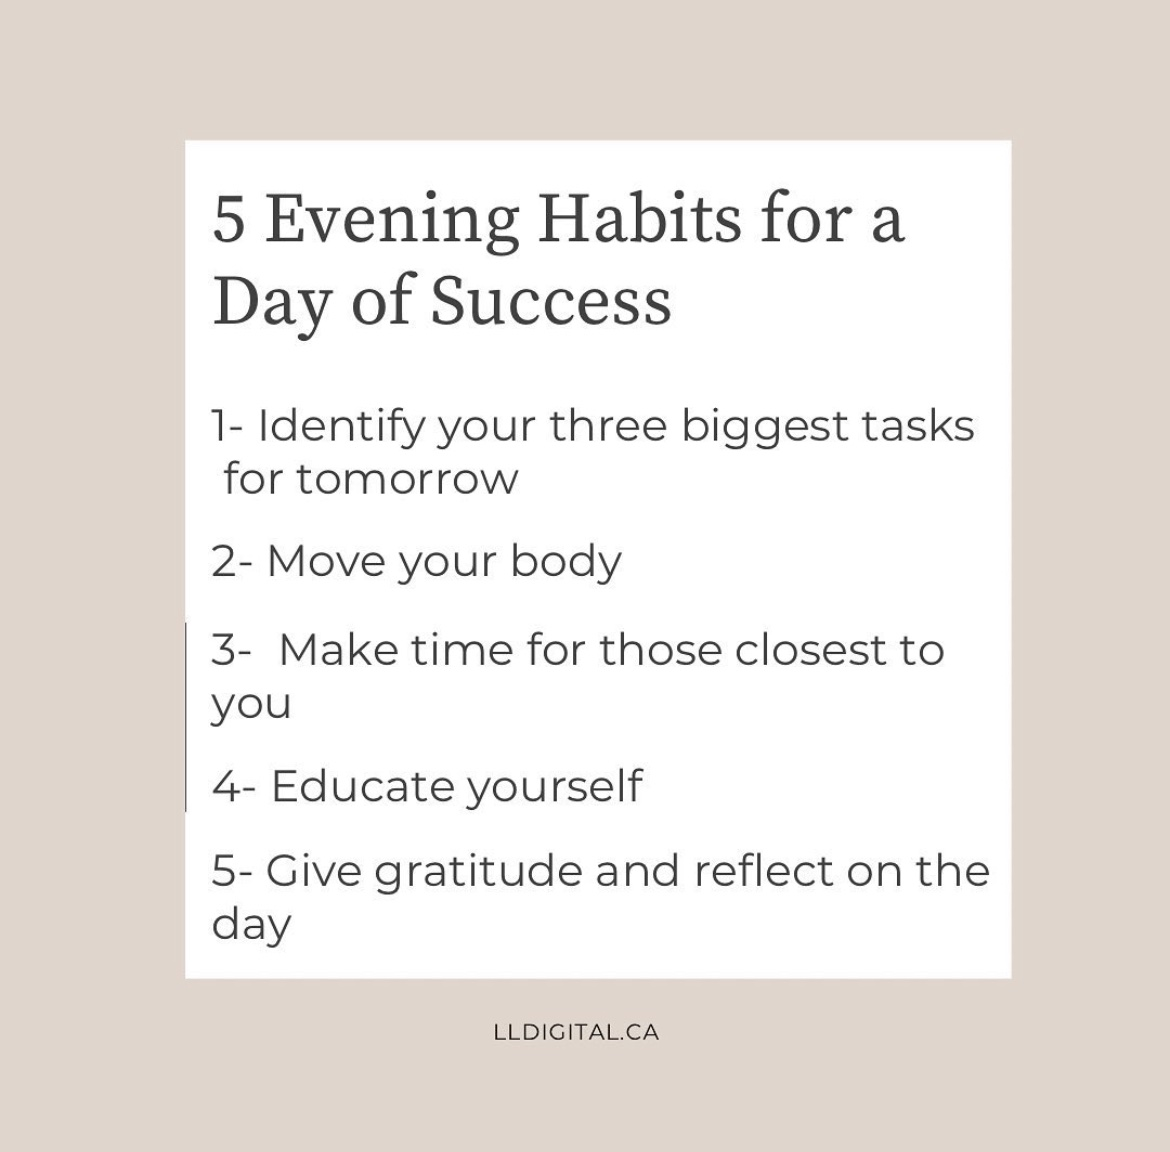 ✨💆🏻‍♀️A great evening routine not only relaxes you, but also recharges you for the next day so you can show up in an optimum physical, mental and emotional state. ~ Julian Hayes  #successmindset #successful #success #GoalOfTheDay #goaloftheweek